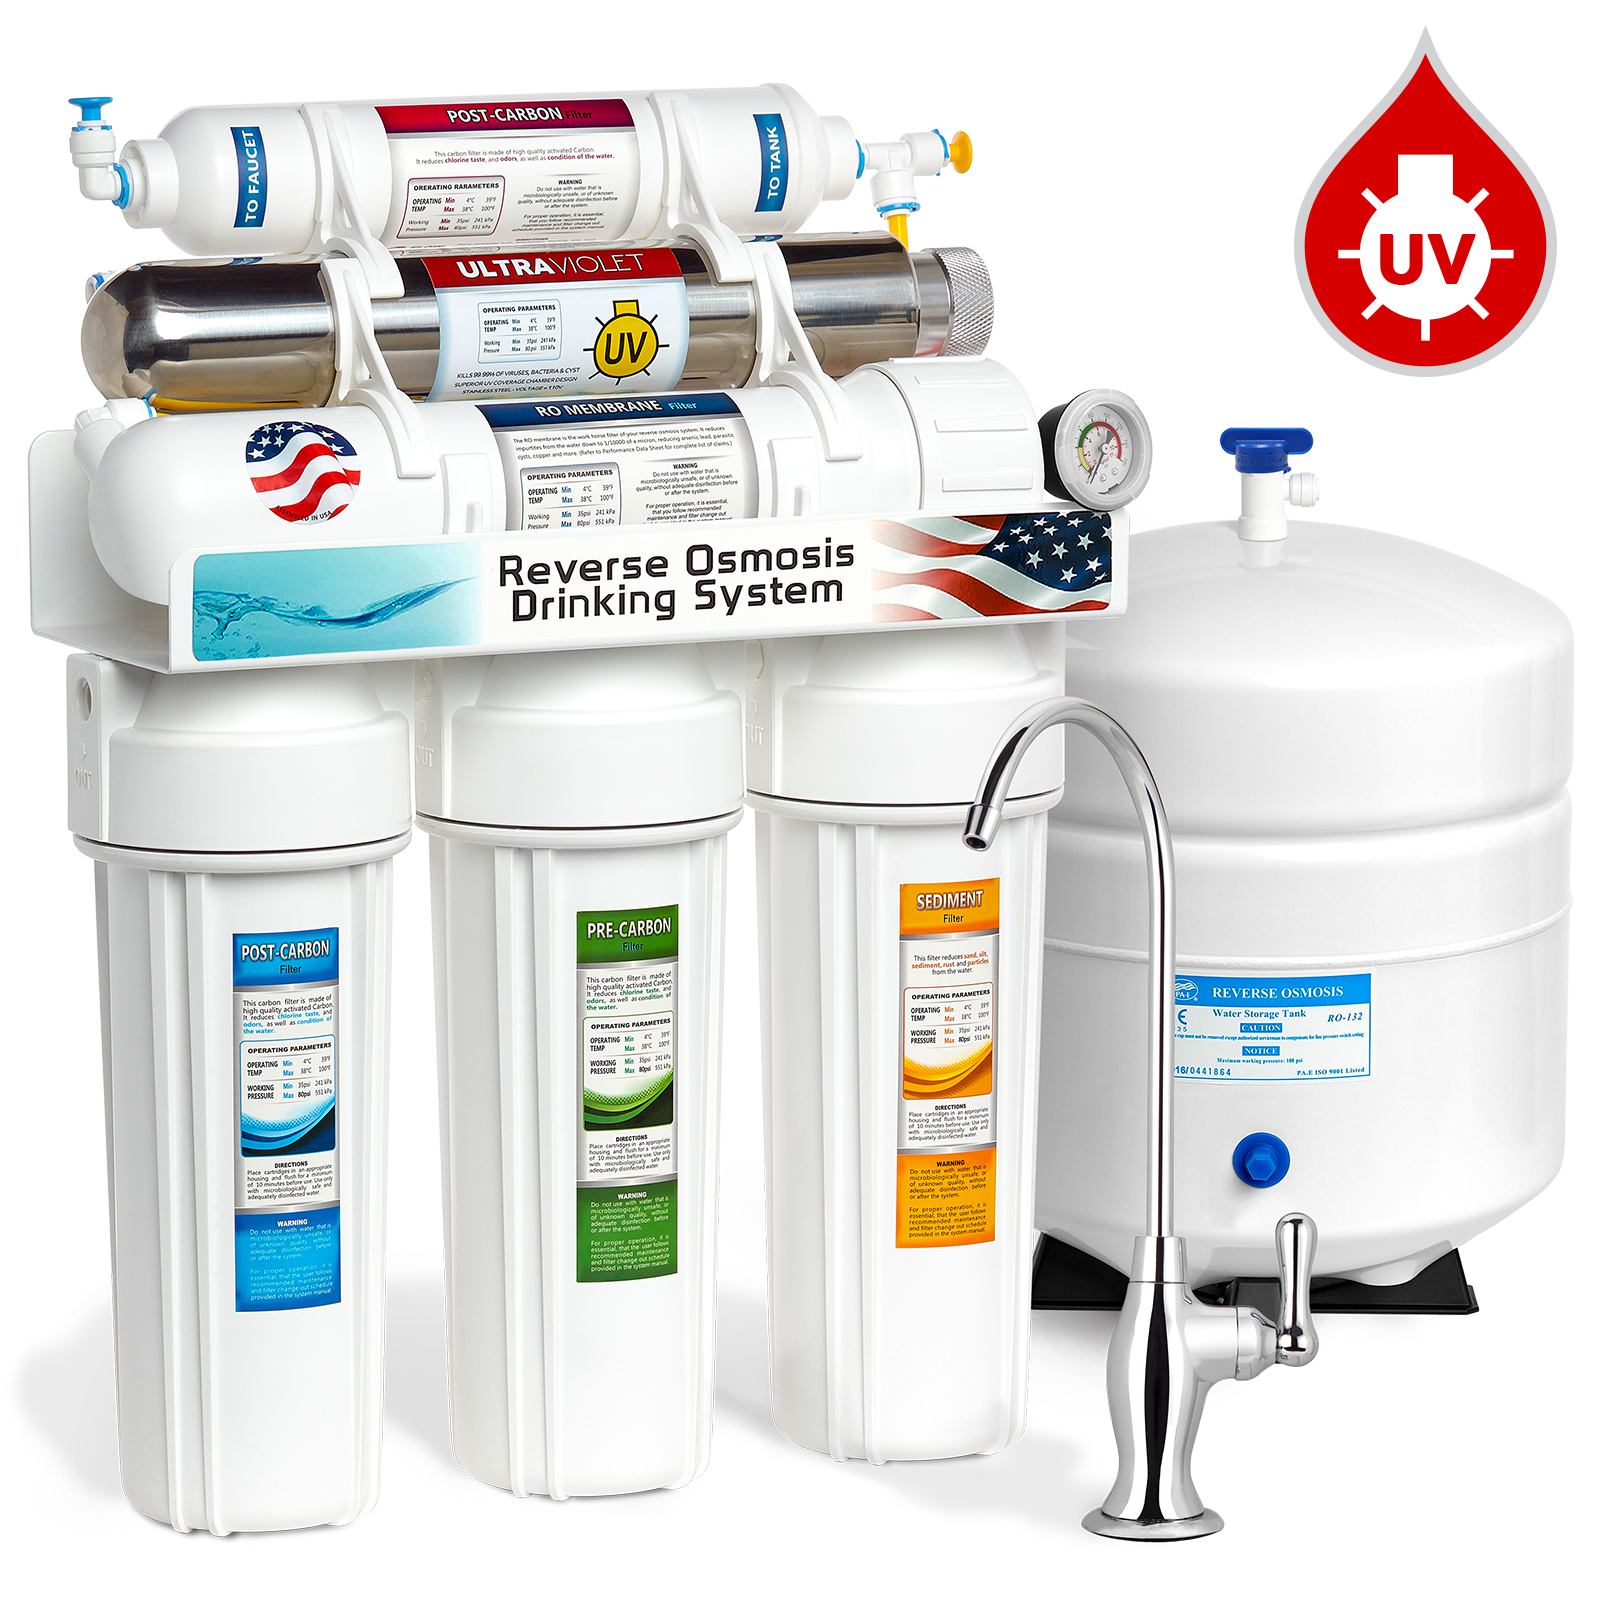 Express Water 6 Stage UV Ultra-Violet Sterilizer Reverse Osmosis Home Drinking Water Filtration System DELUXE faucet - PRESSURE GAUGE - ROUV5DG